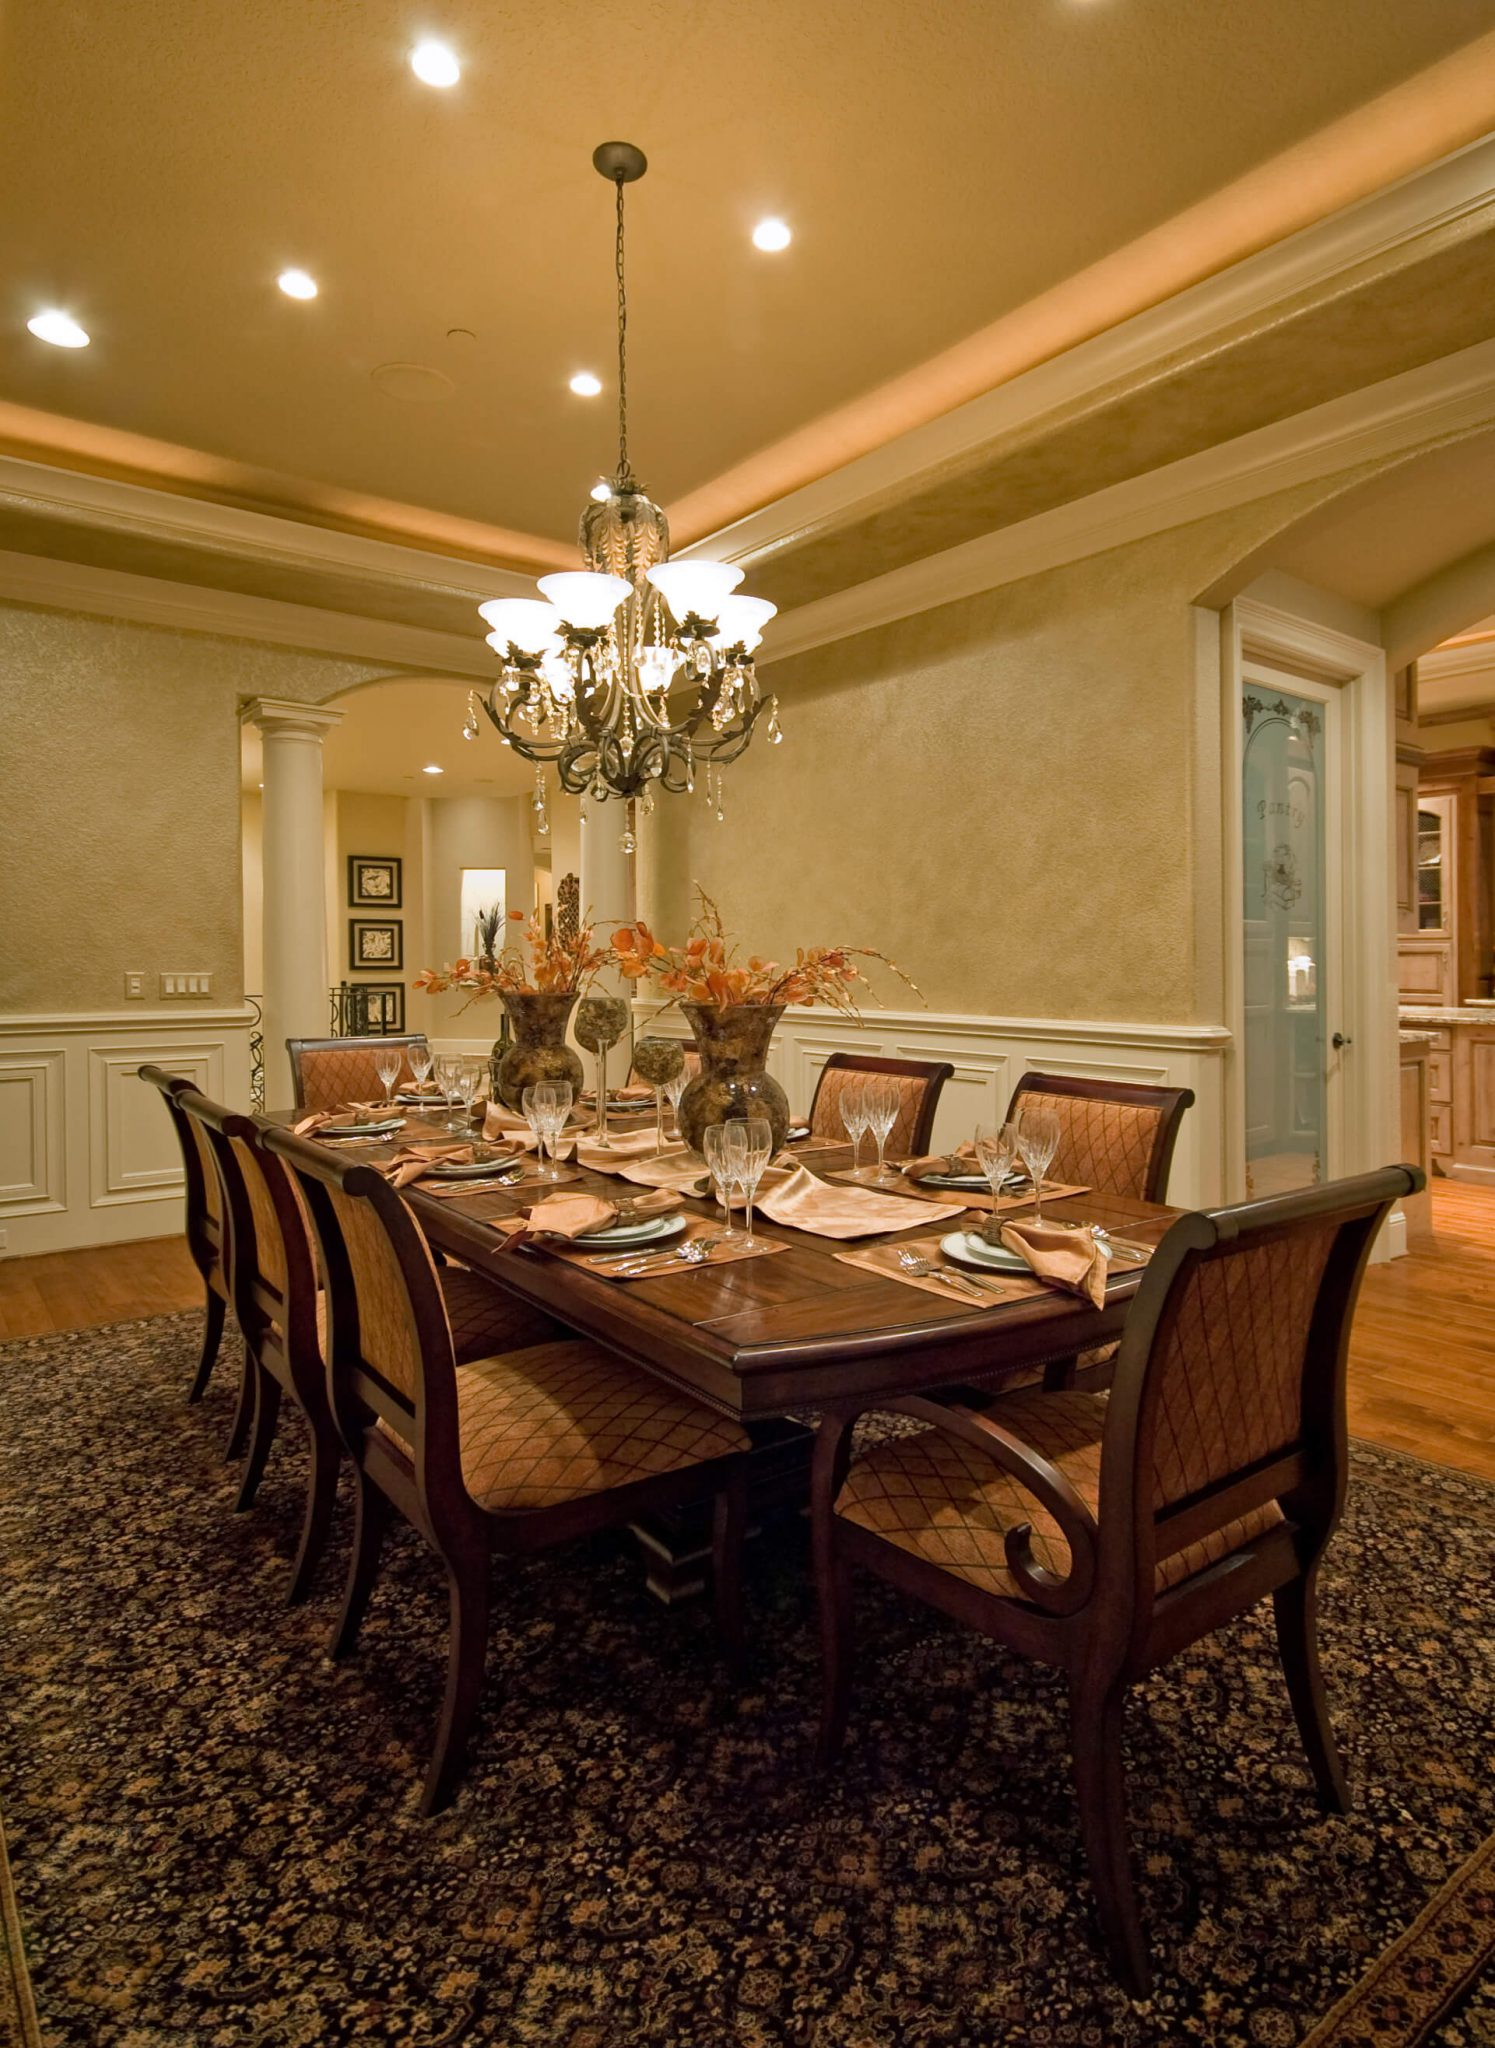 126 Luxury Dining Rooms Part 2